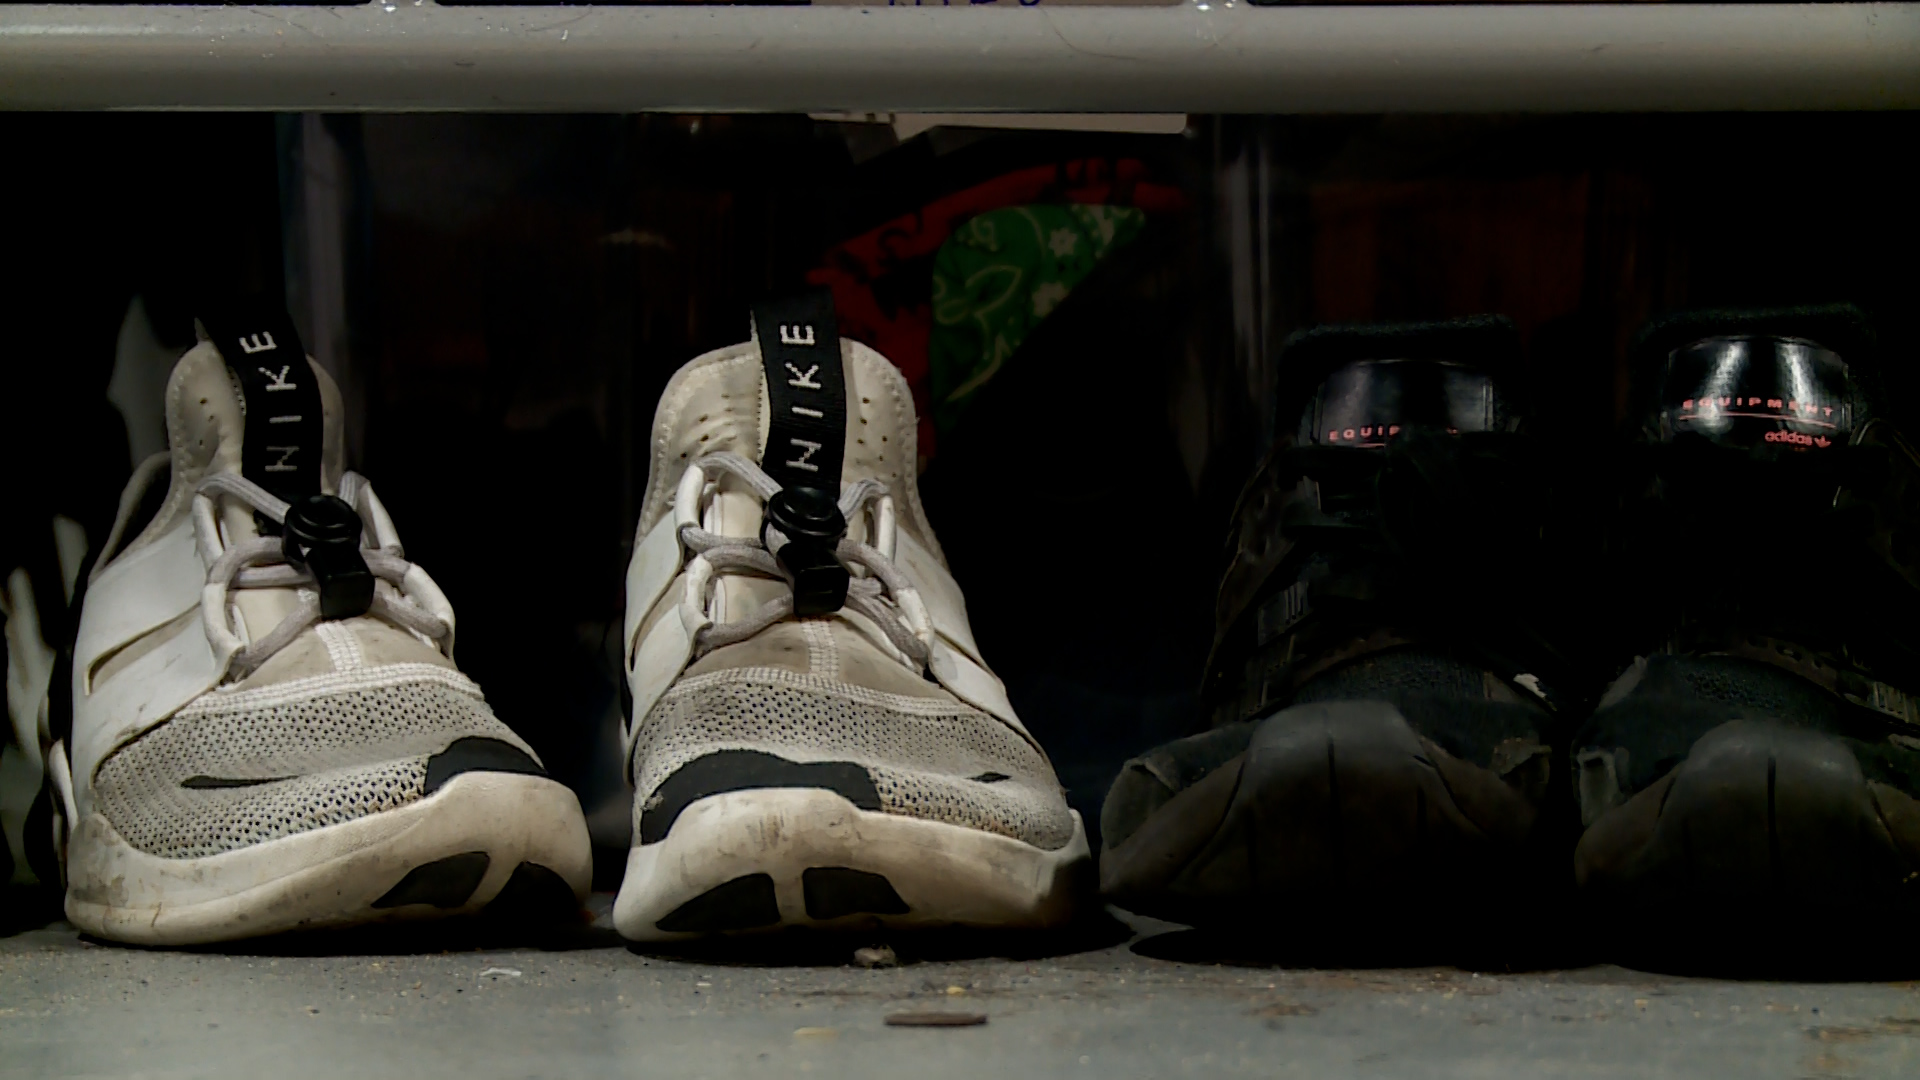 homeless youth tennis shoes at shelter